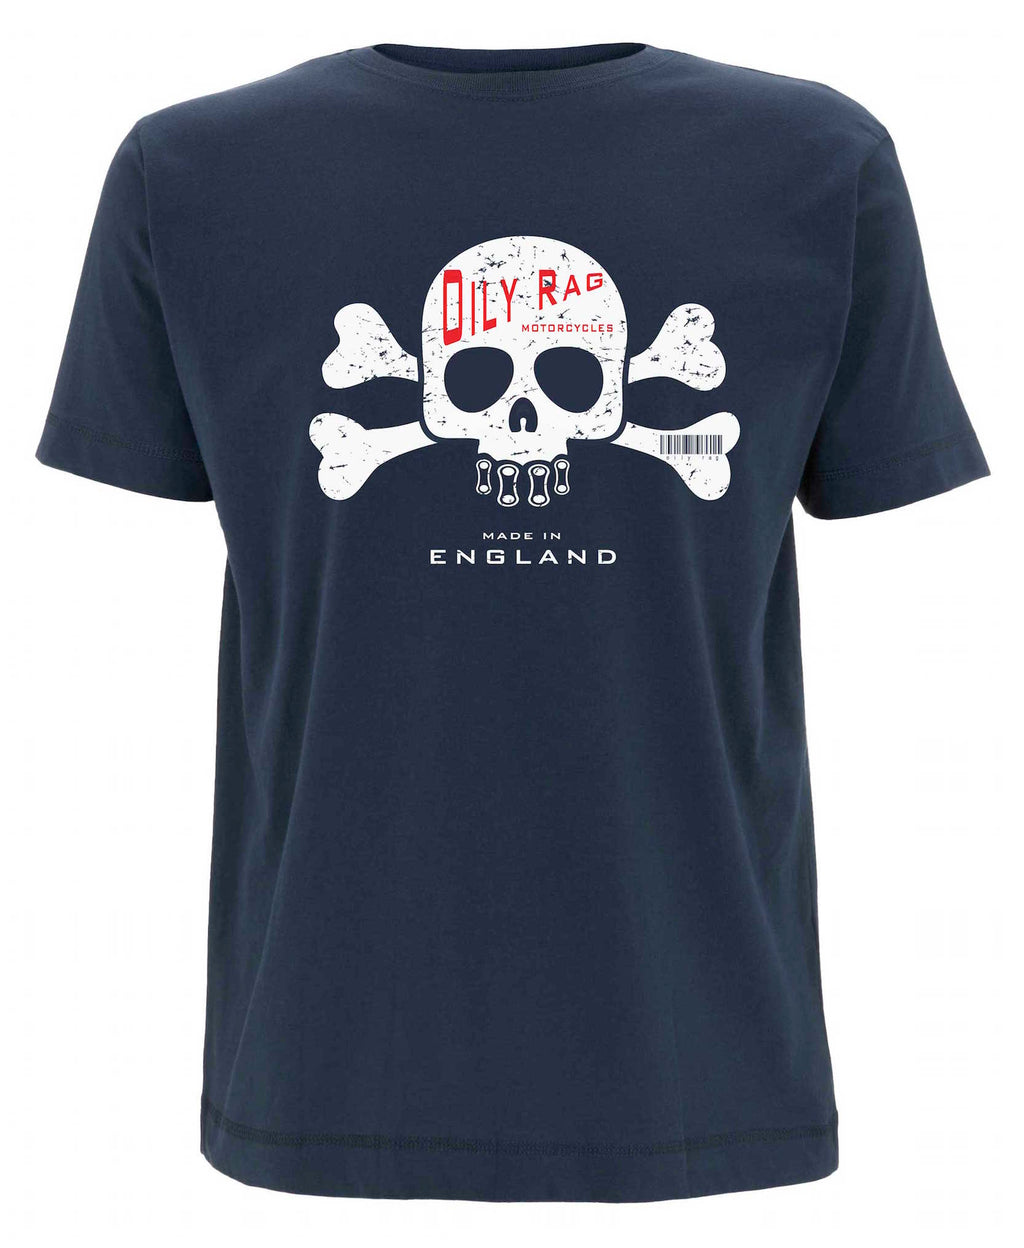 Oily Rag Clothing Cross Bones retro T'shirt